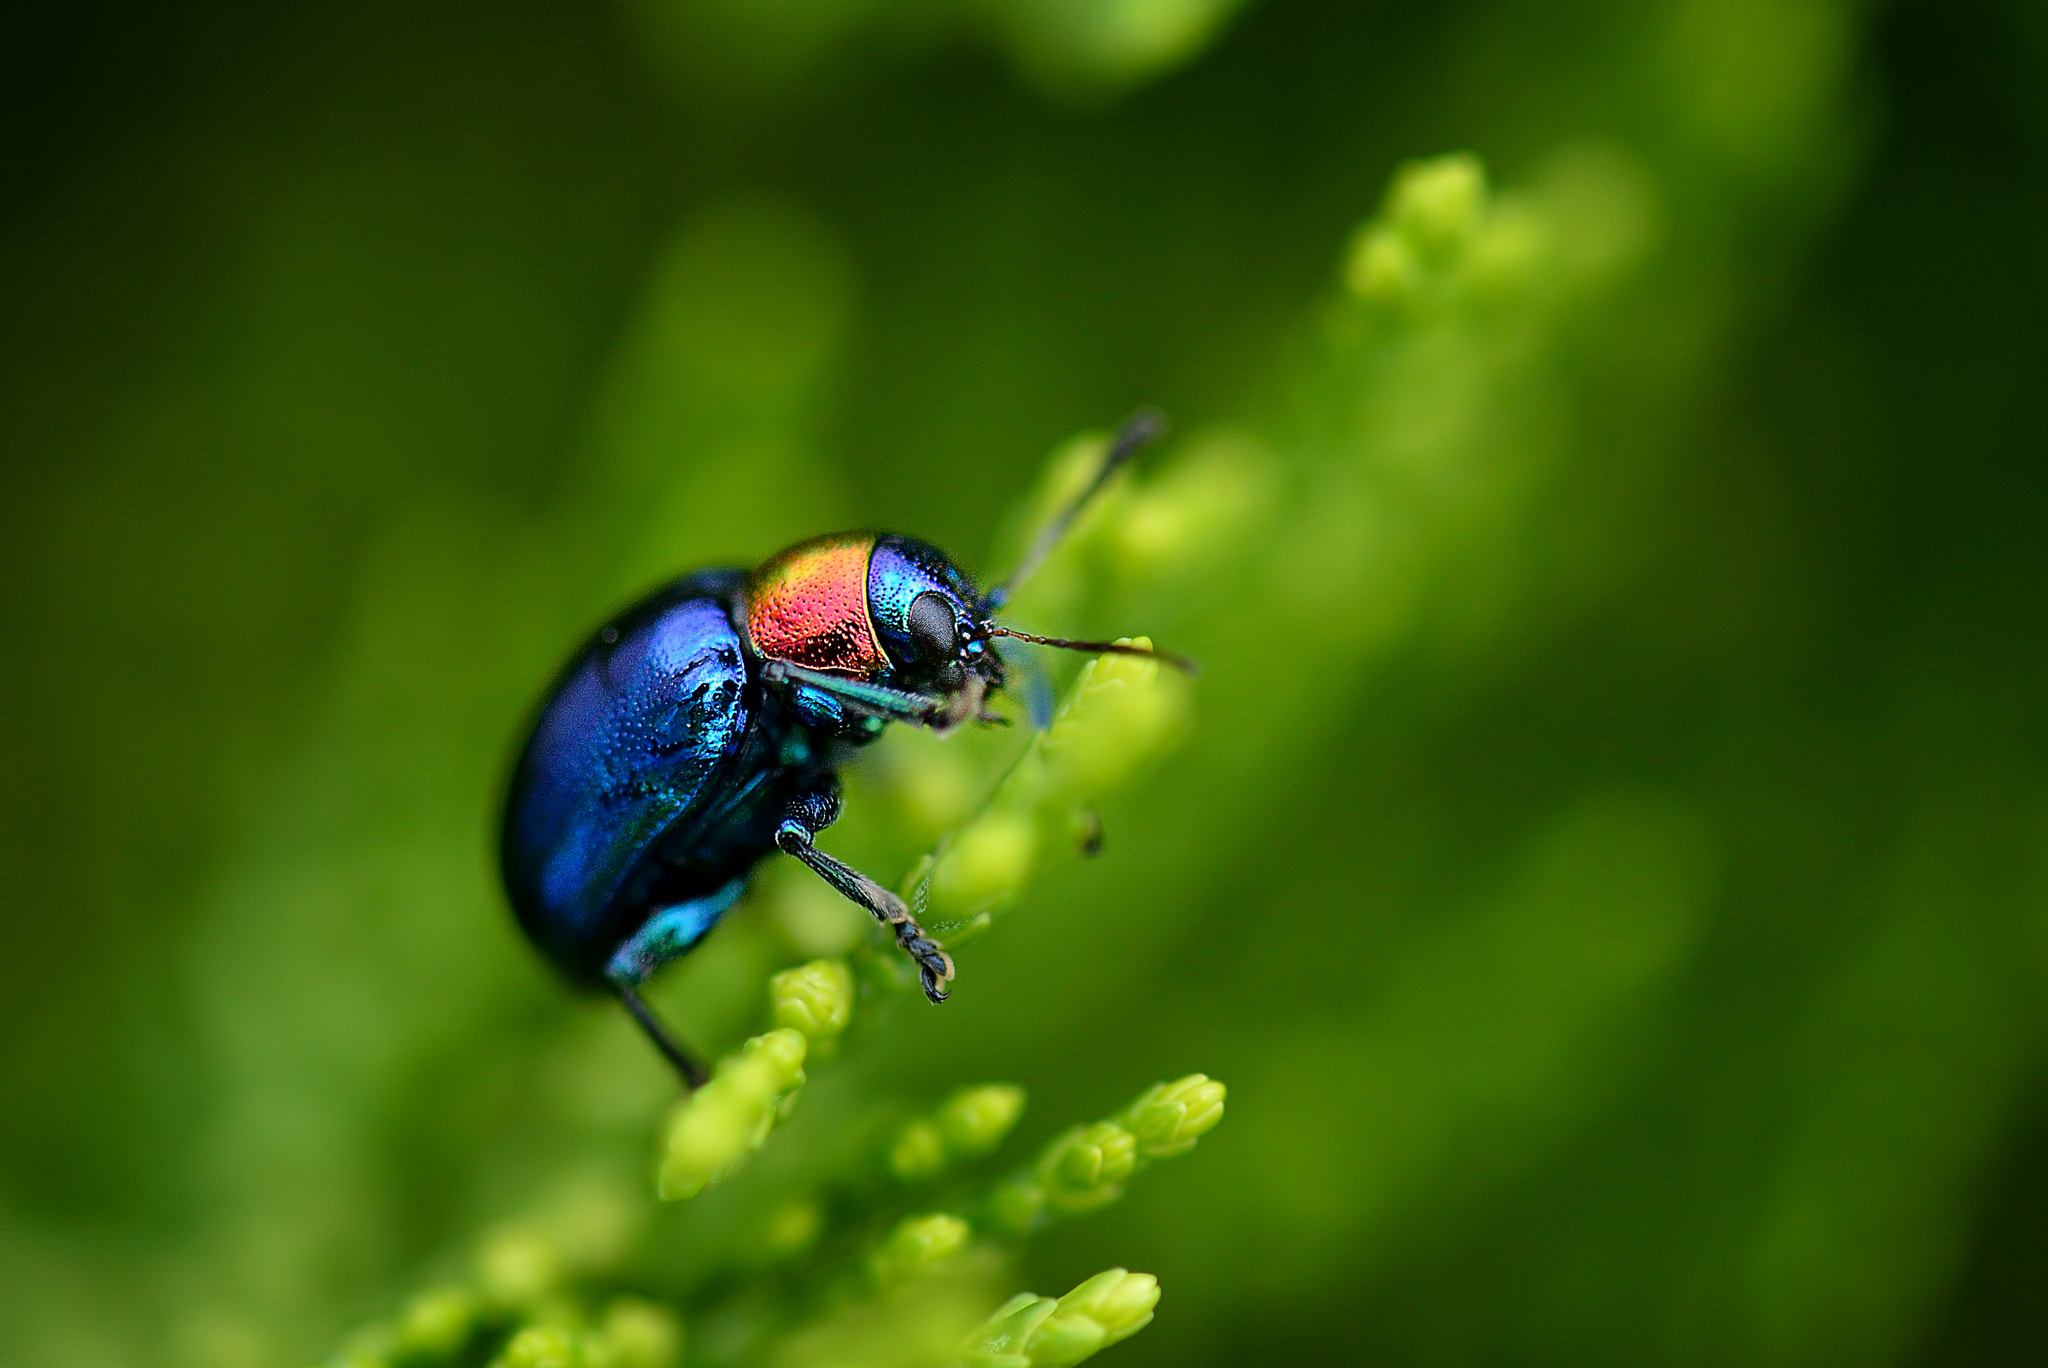 Photograph Bug's Life by Vichaya Pop on 500px